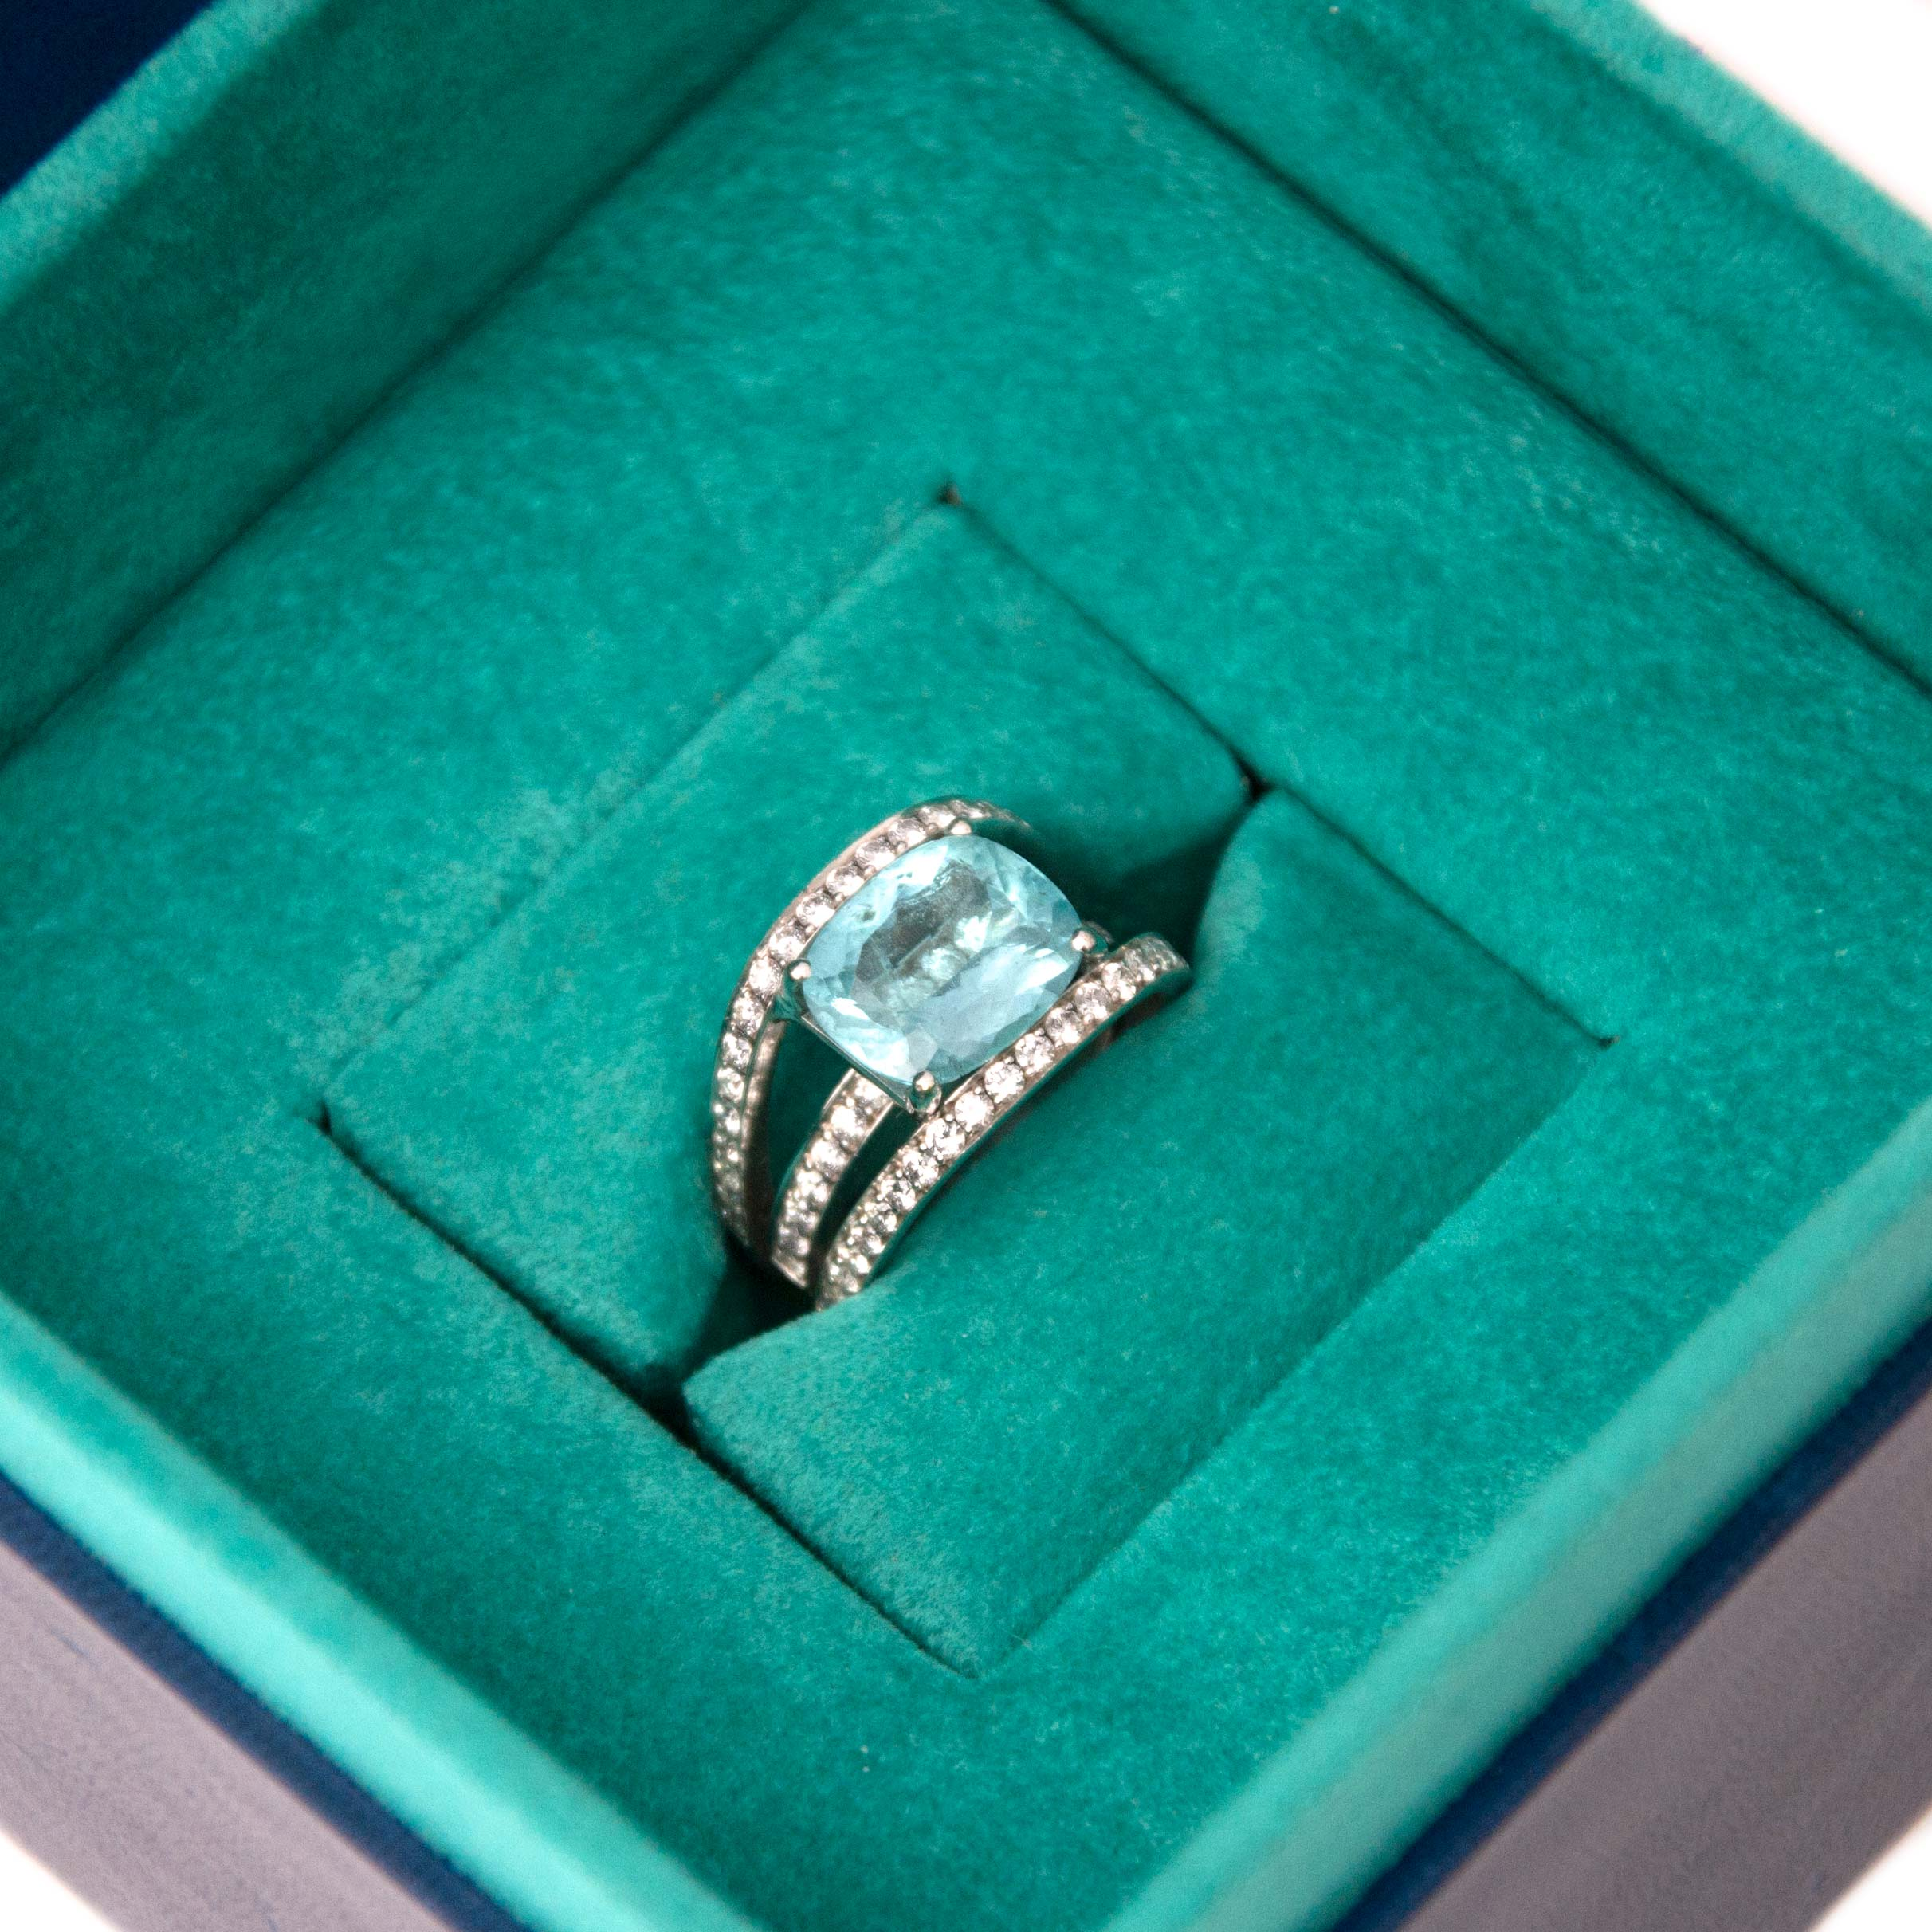 Buy and sell your authentic White Gold Paraiba Tourmaline and Diamonds Ring online